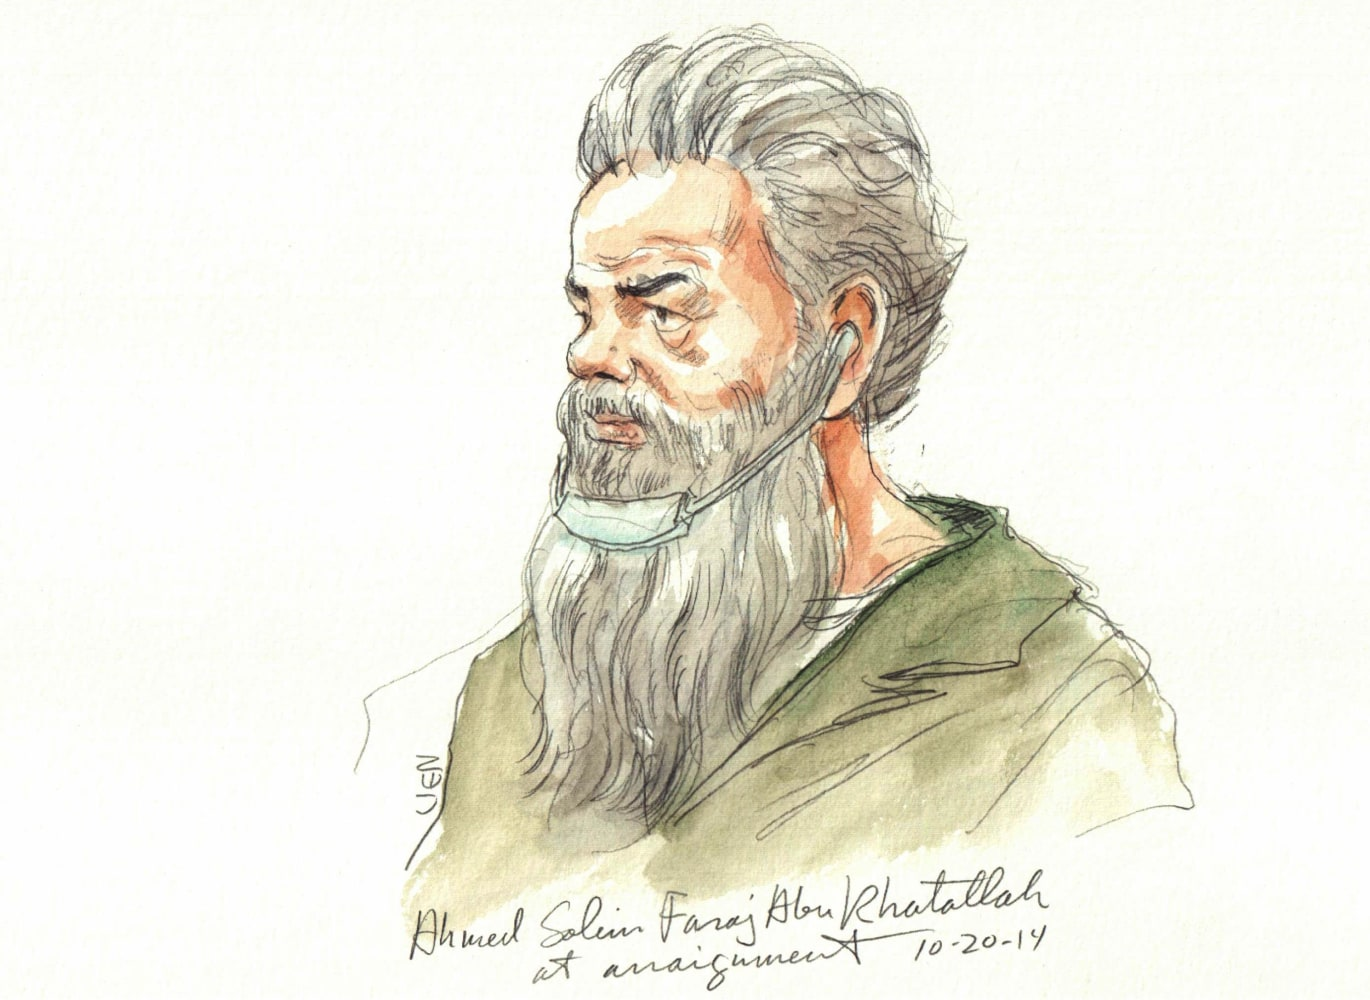 Trial begins of Benghazi accused Ahmed Abu Khatallah